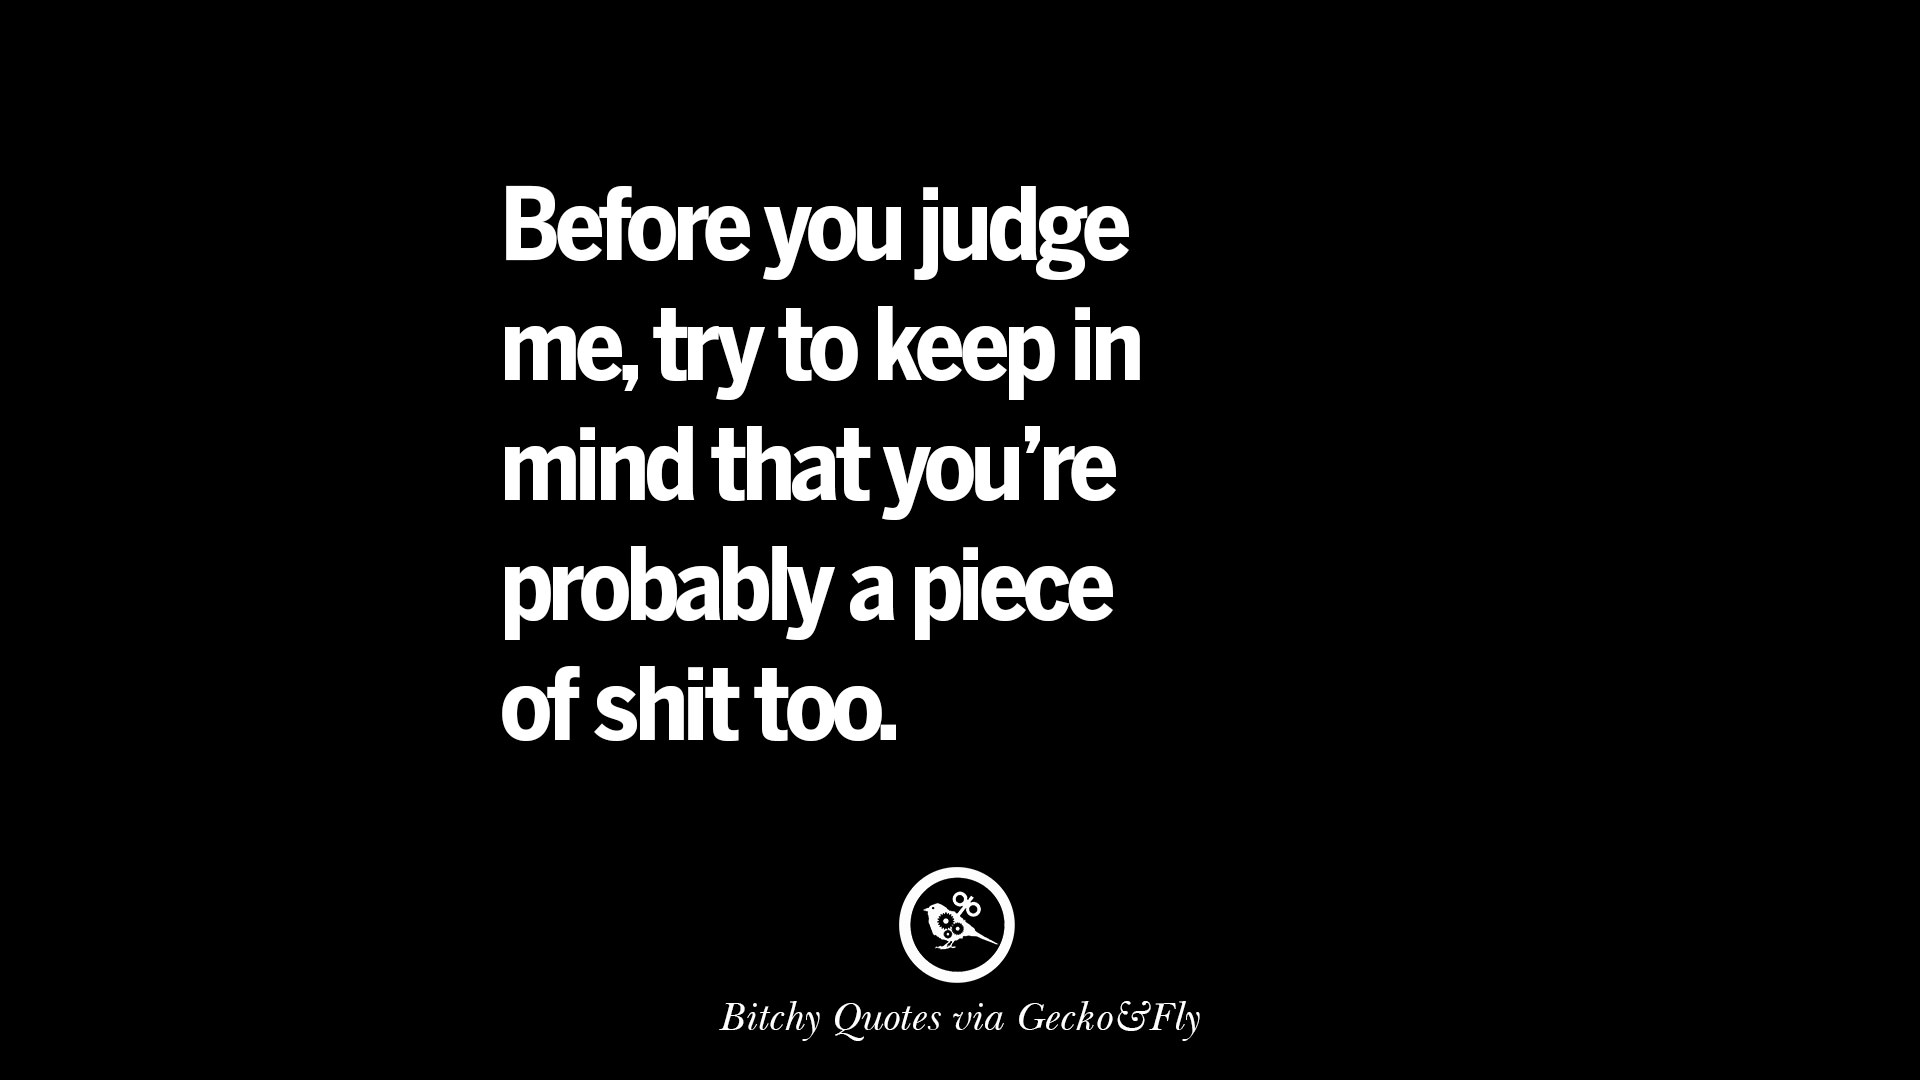 Before you judge me, try to keep in mind that you're probably a piece of shit too.